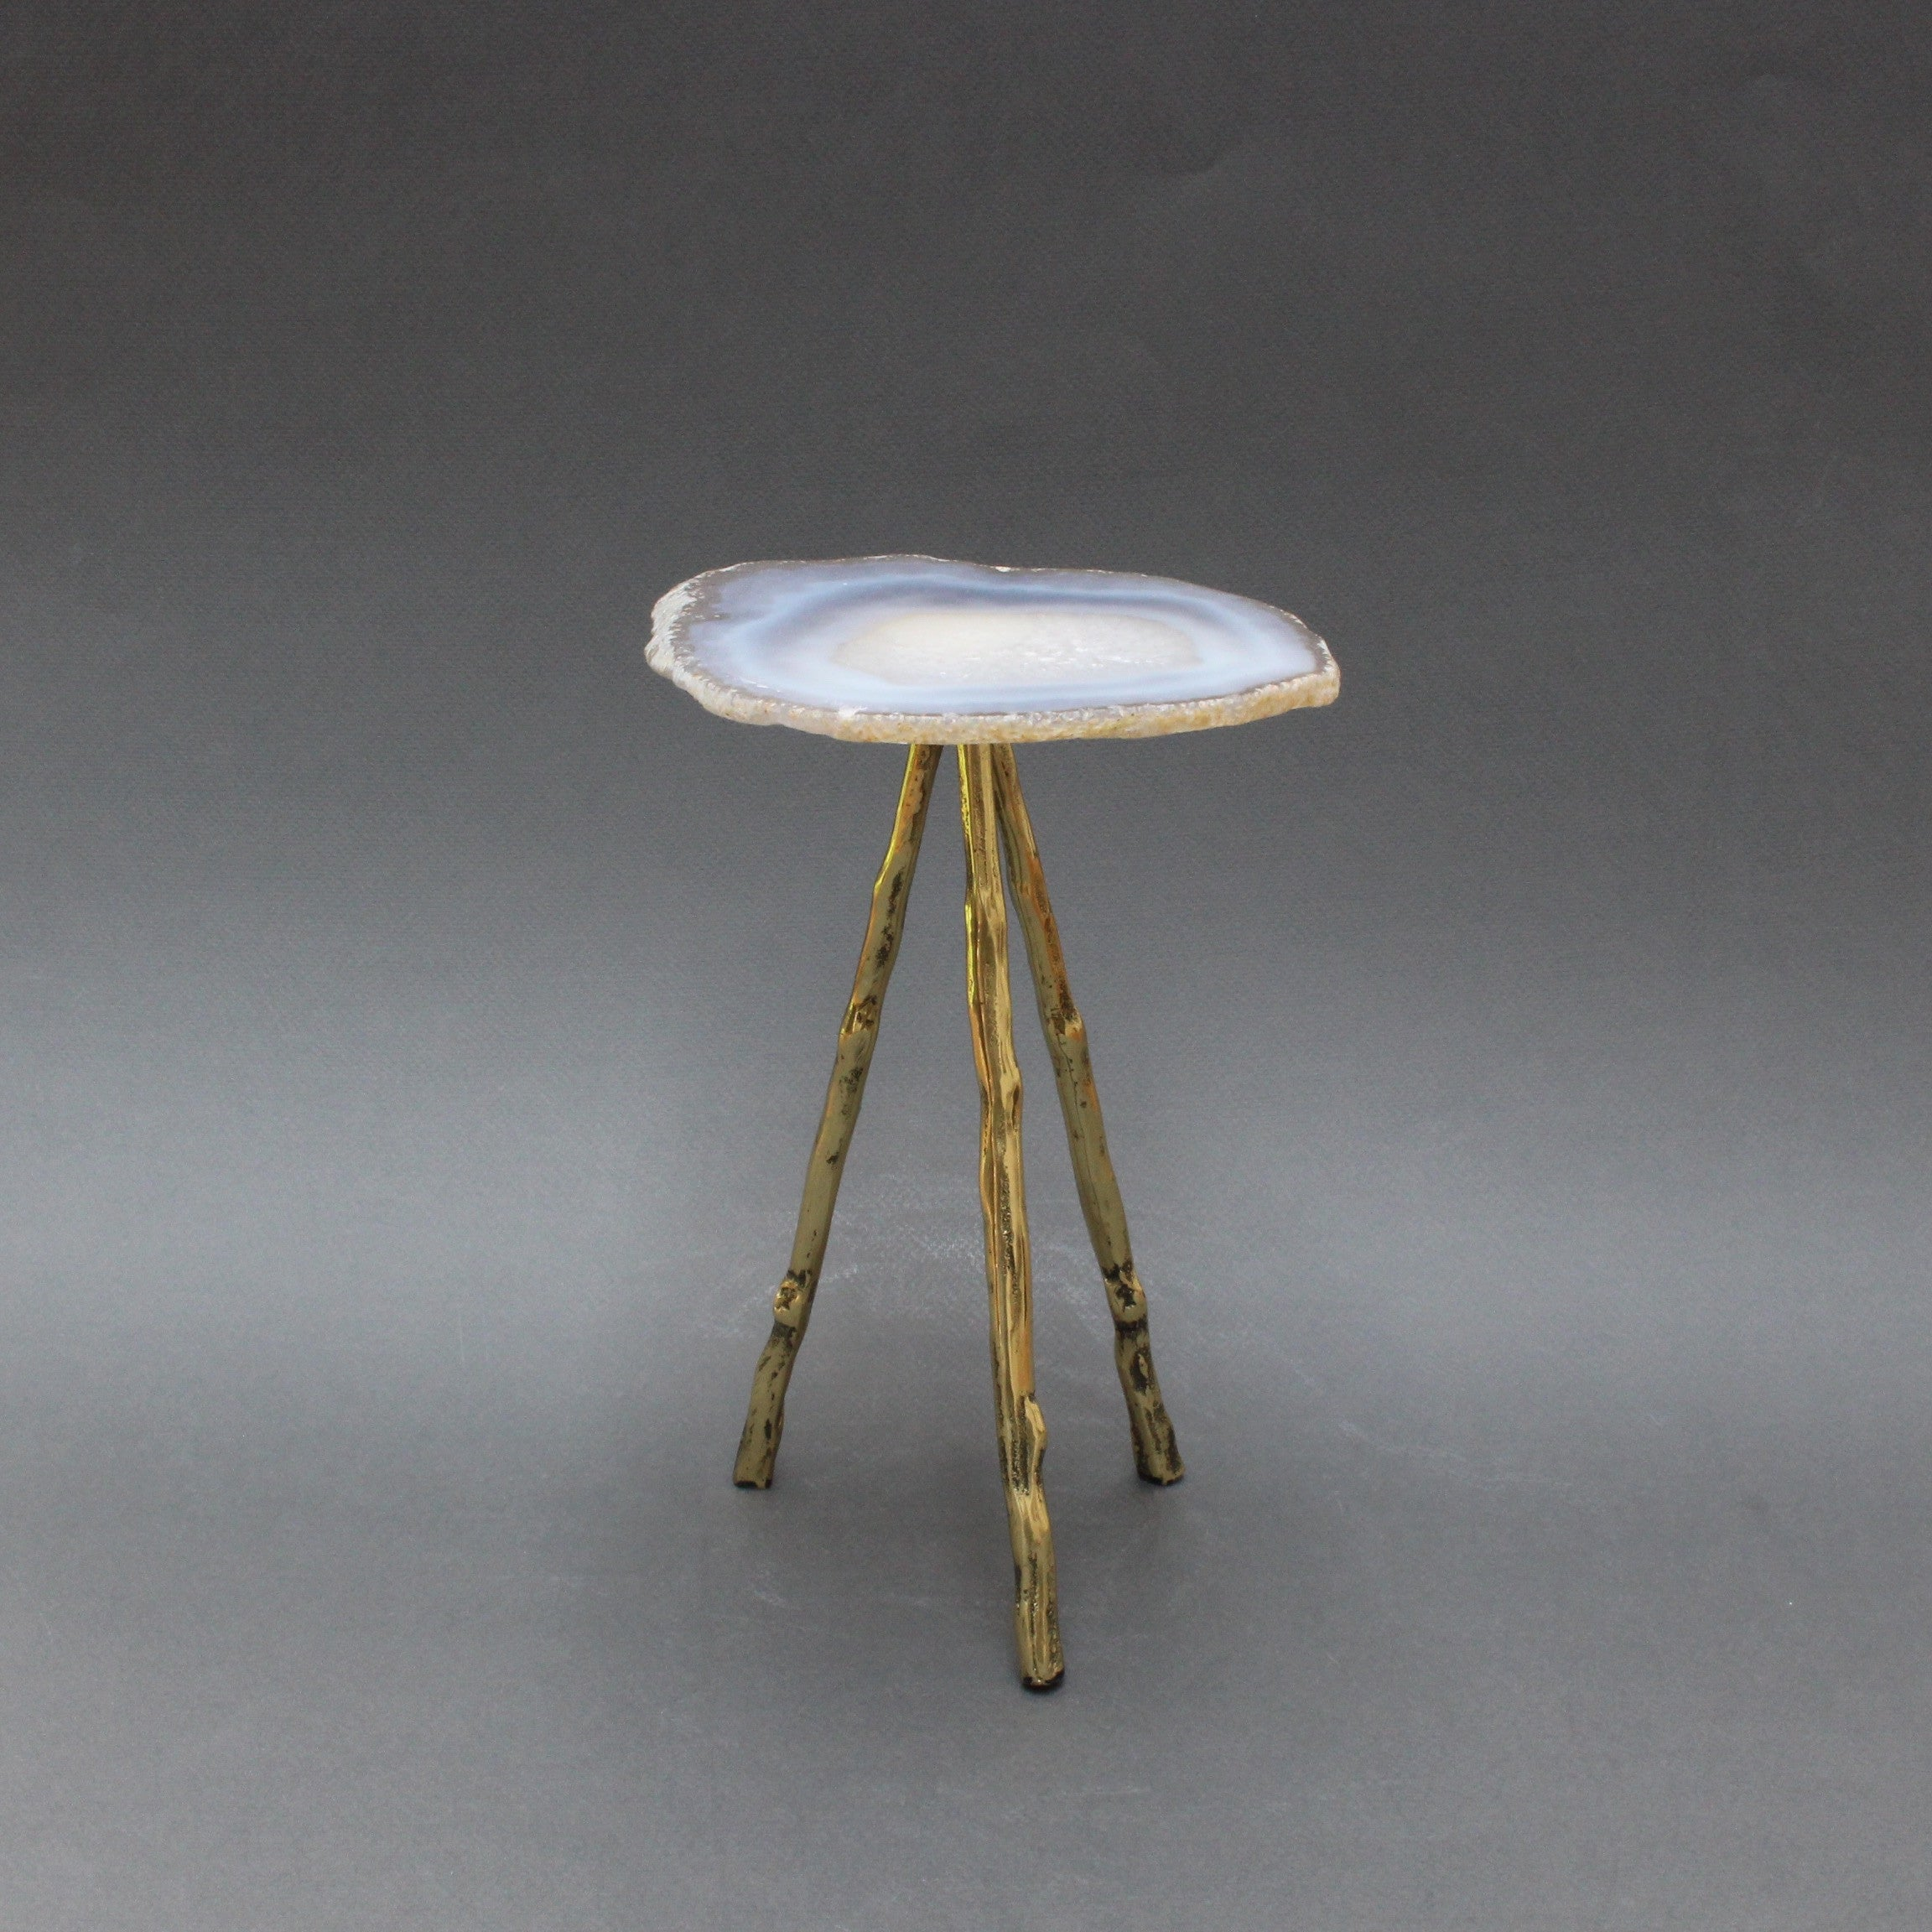 Agate Display Stand on Brass Legs - Large